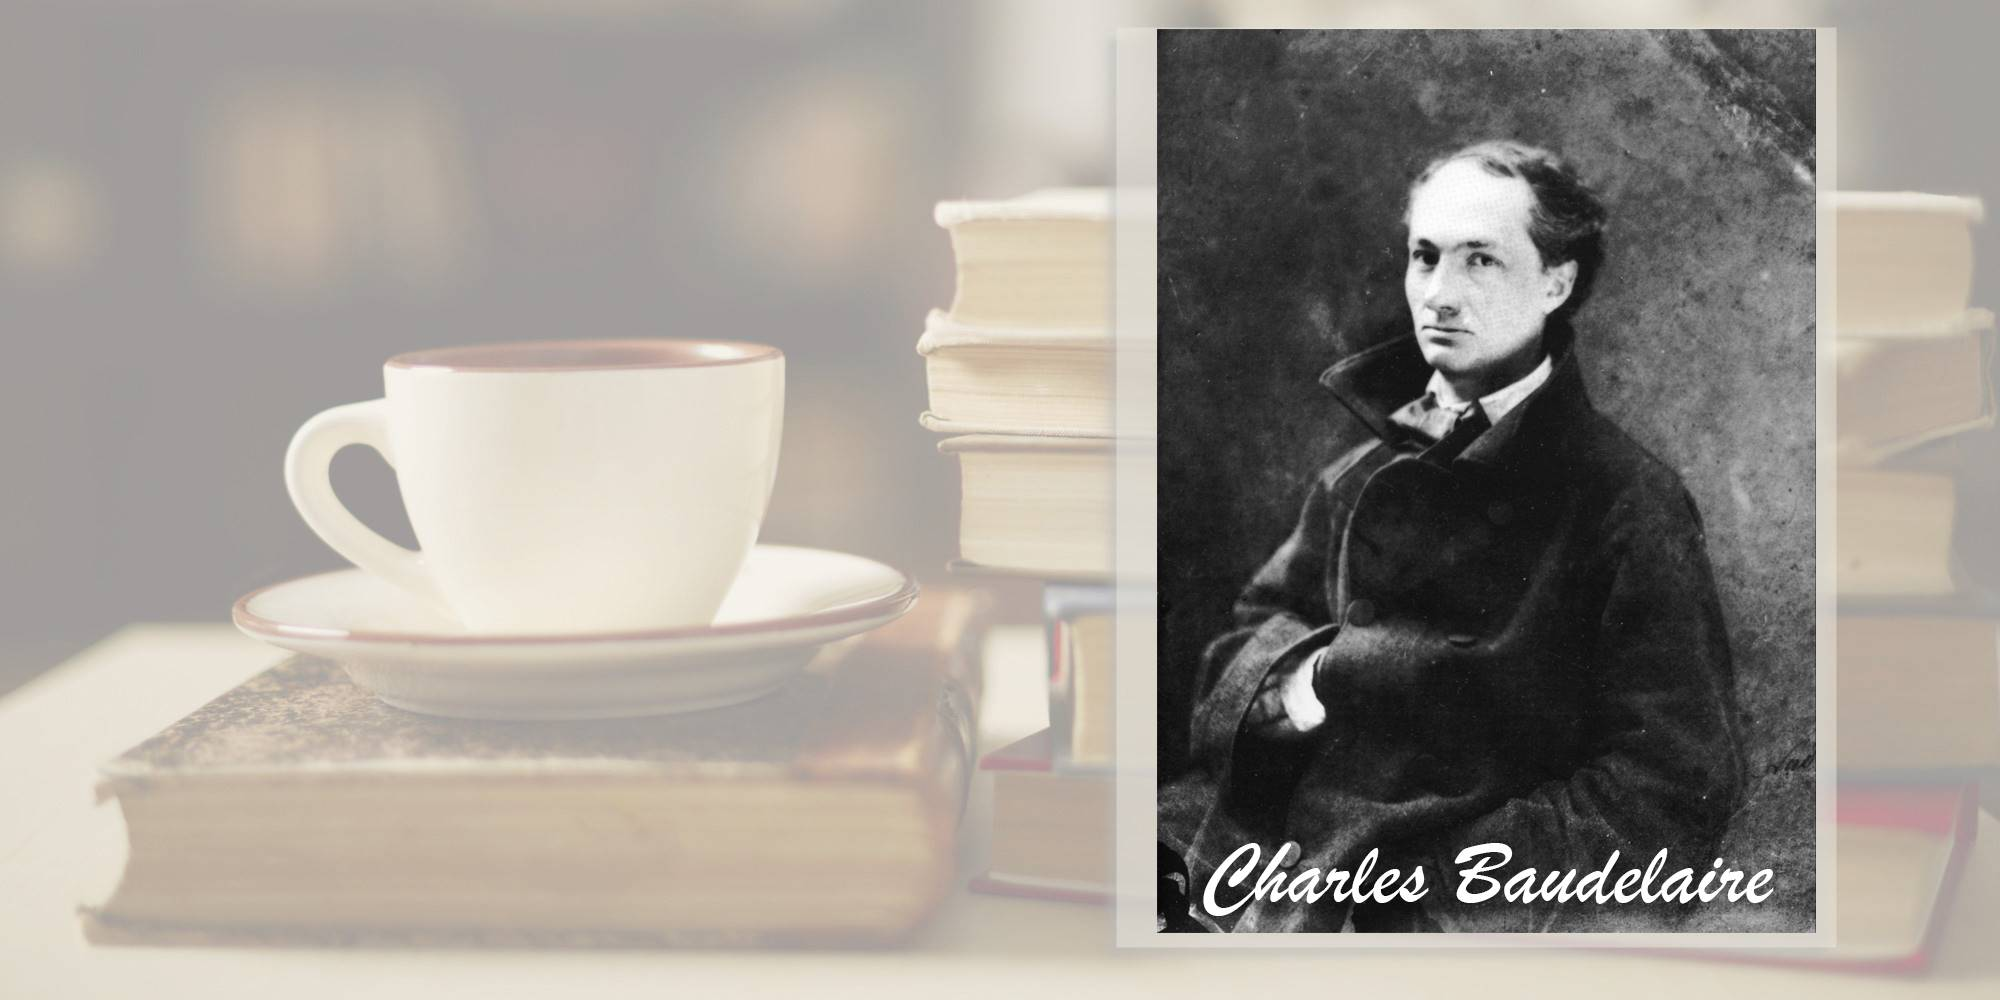 charles boudelaire